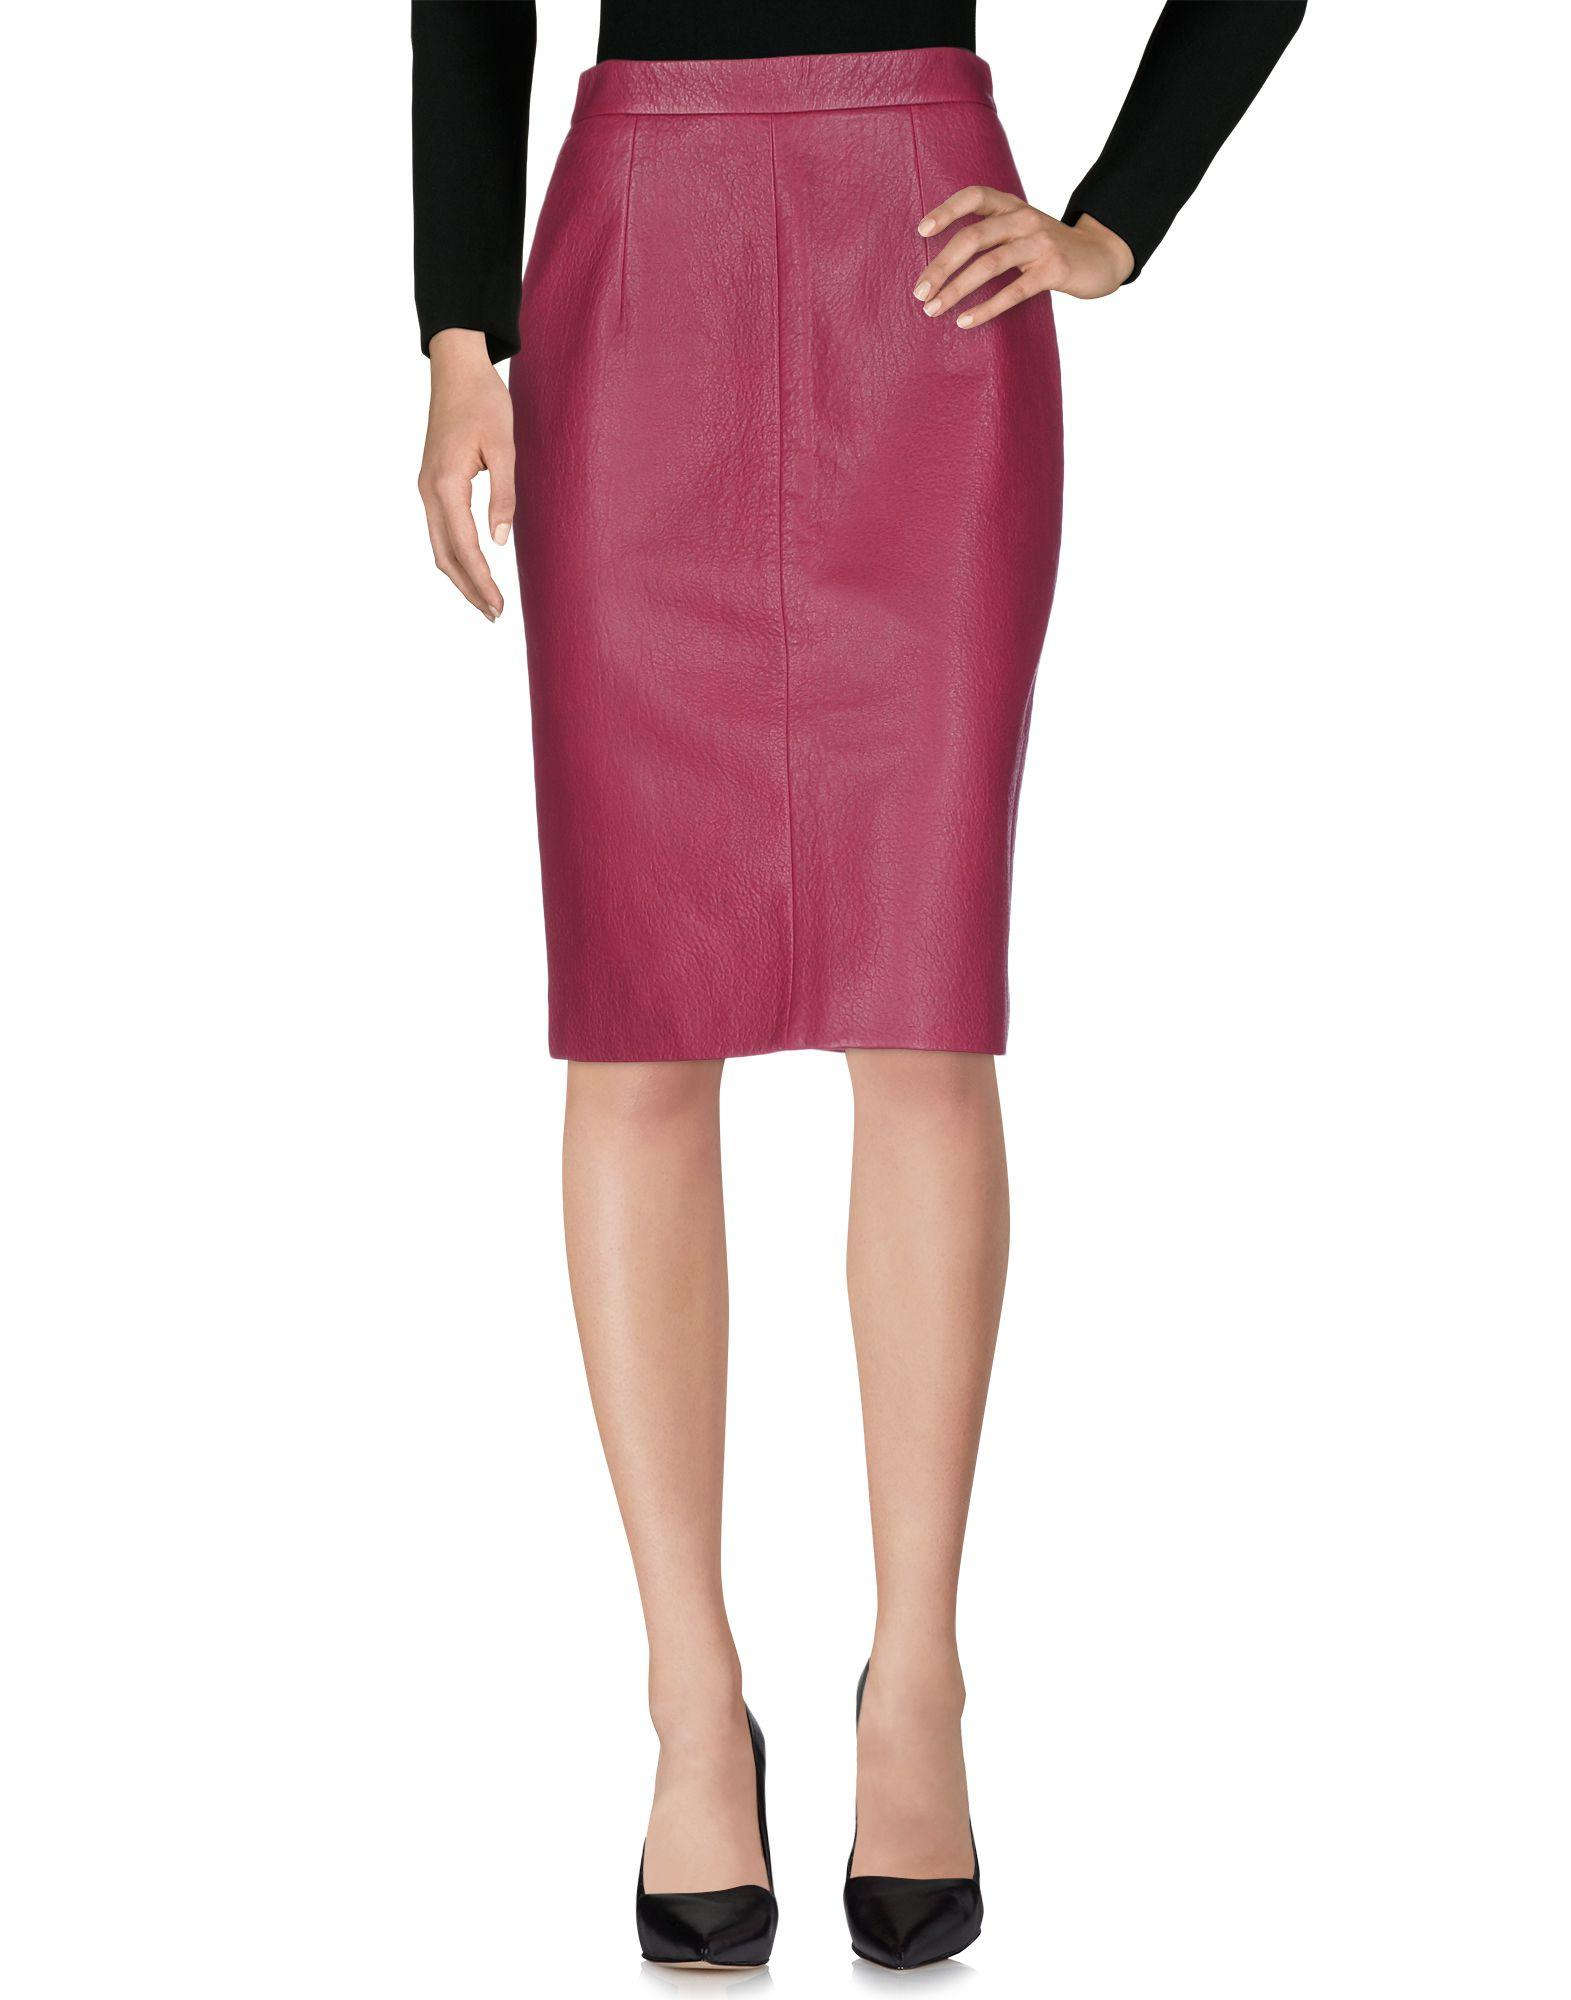 Miu Miu Knee Length Skirts In Garnet